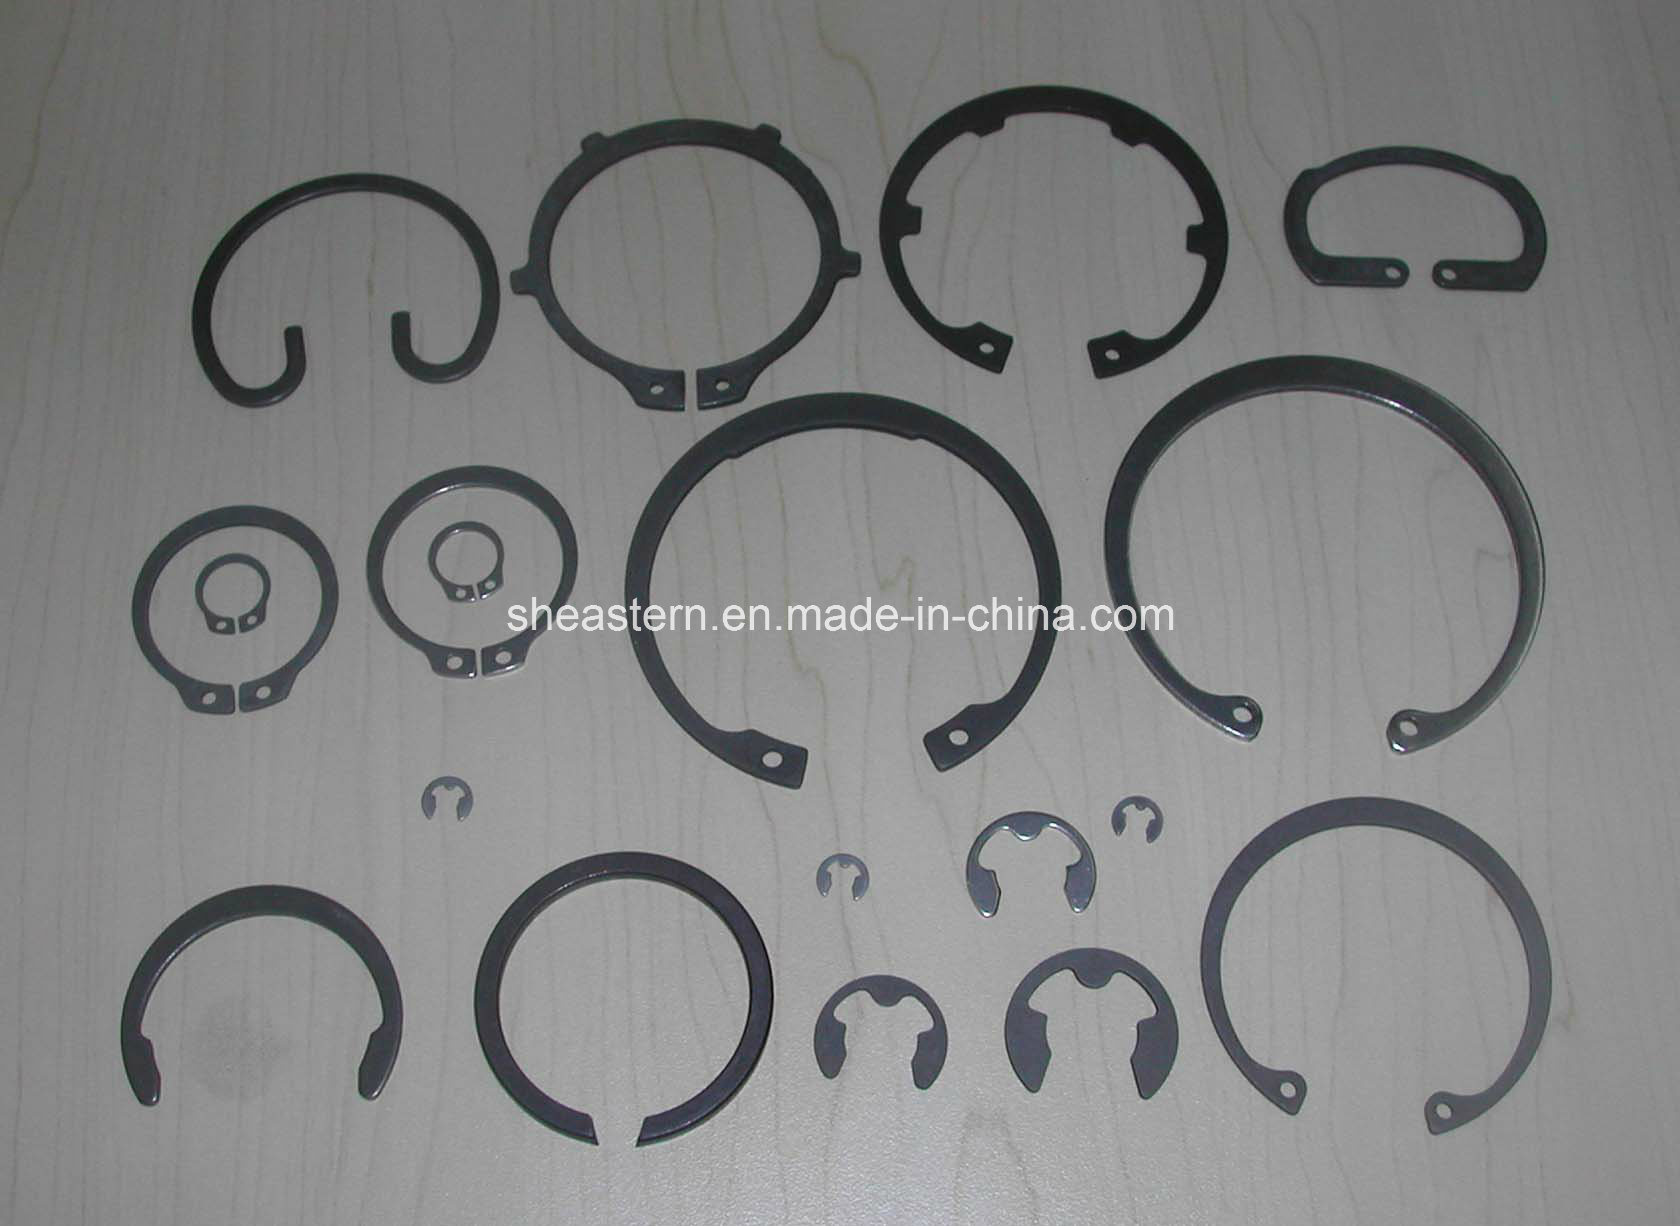 Retaining Ring / Circlips (DIN471/DIN472/DIN6799)